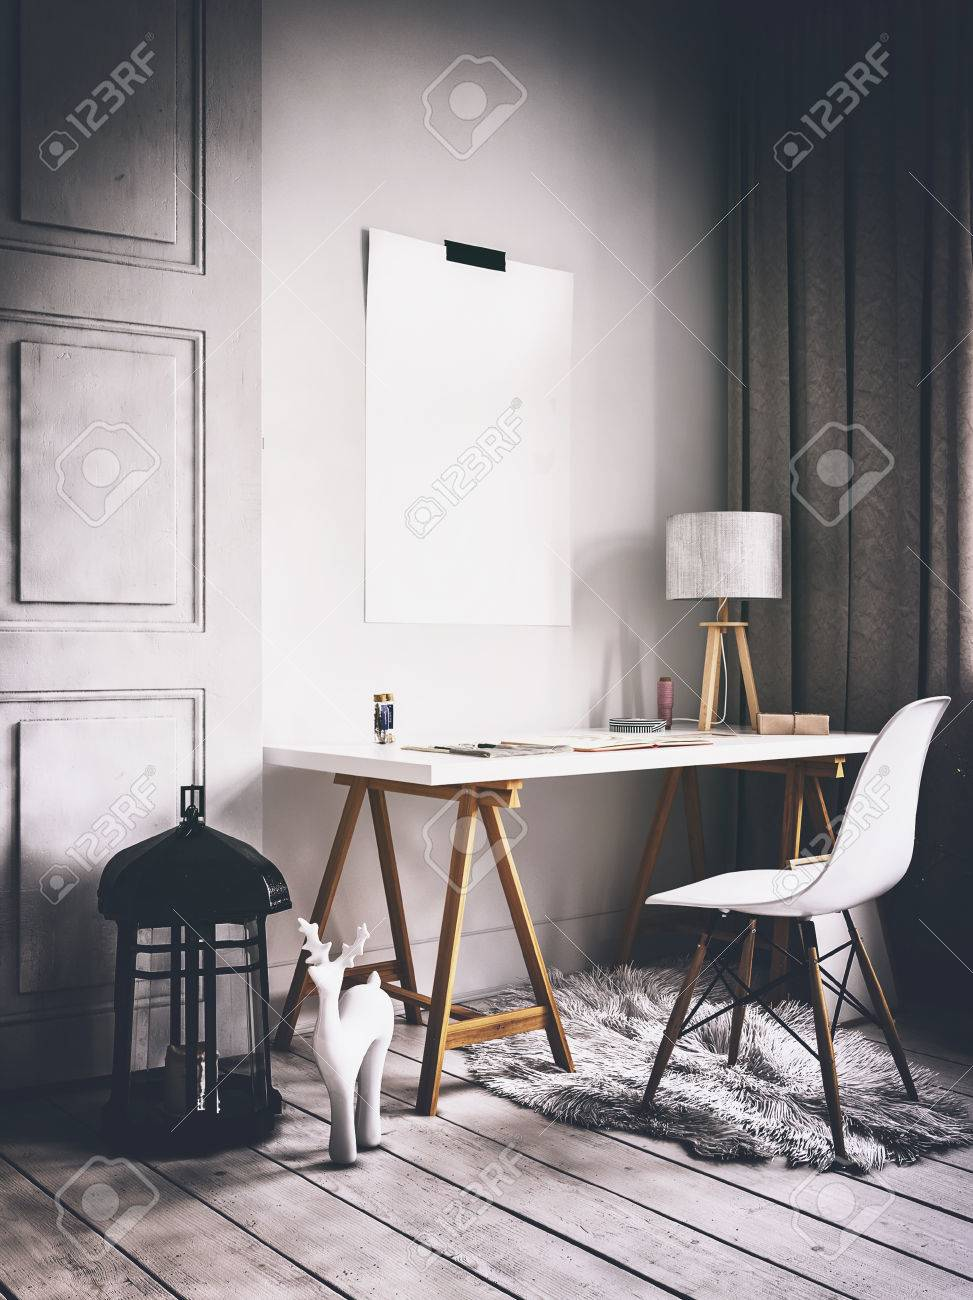 scandinavian home office. 3D Rendering Of Modern Scandinavian Style Home Office With Blank Poster On Wall Beside Desk Stock O